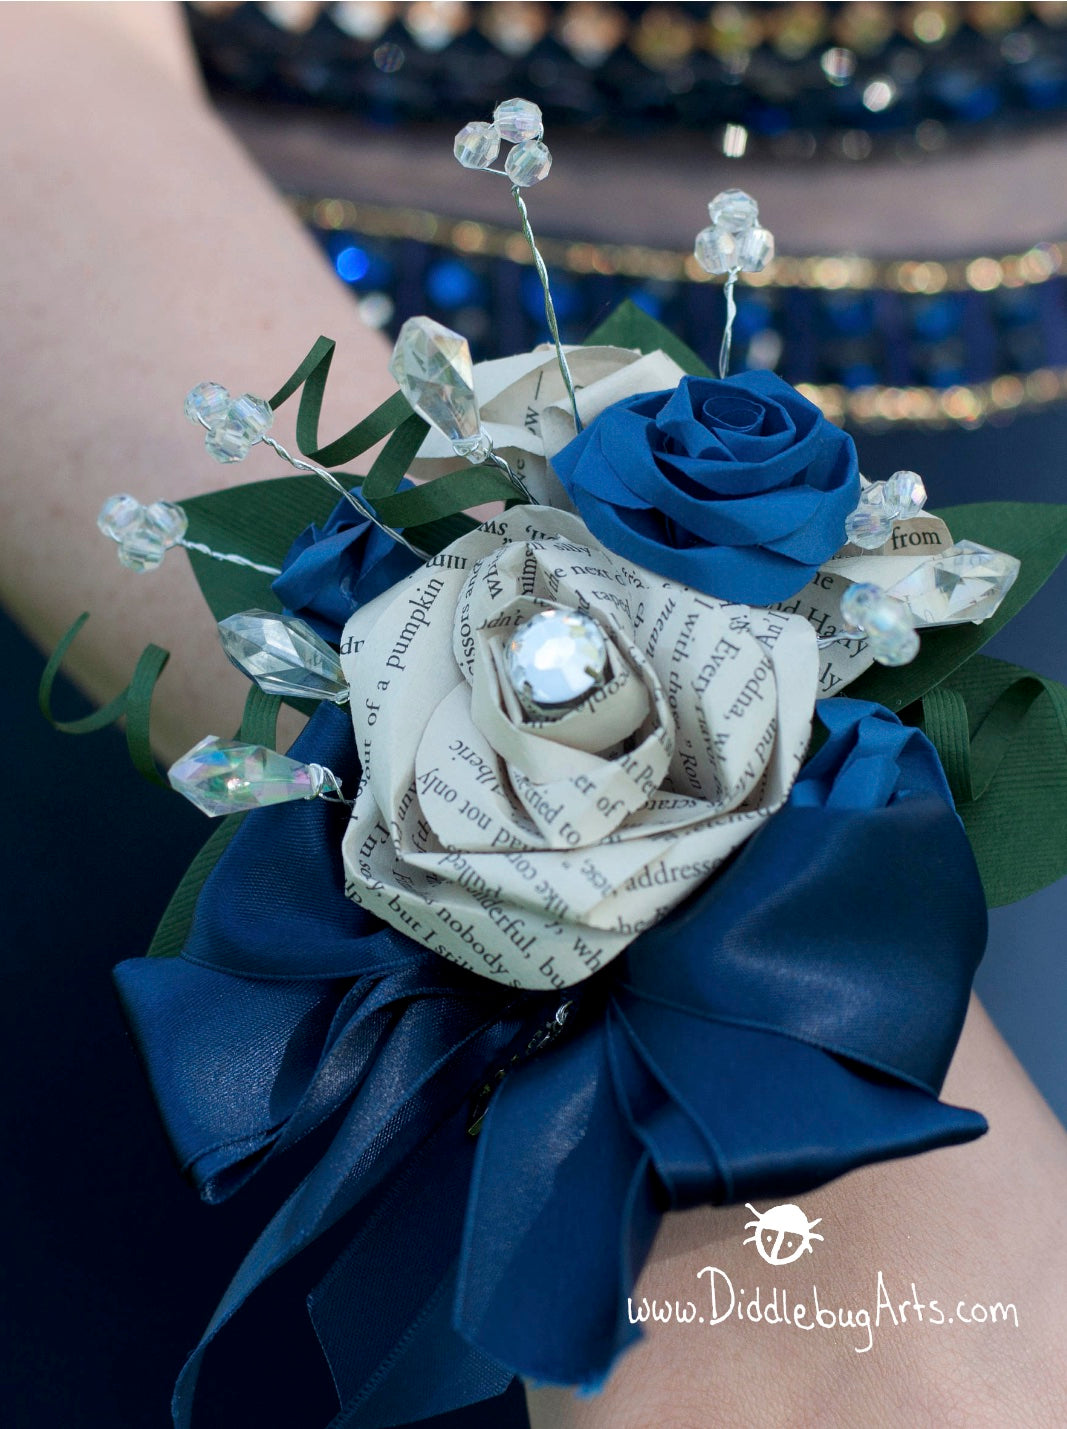 prom wrist corsage with paper book page roses and bling